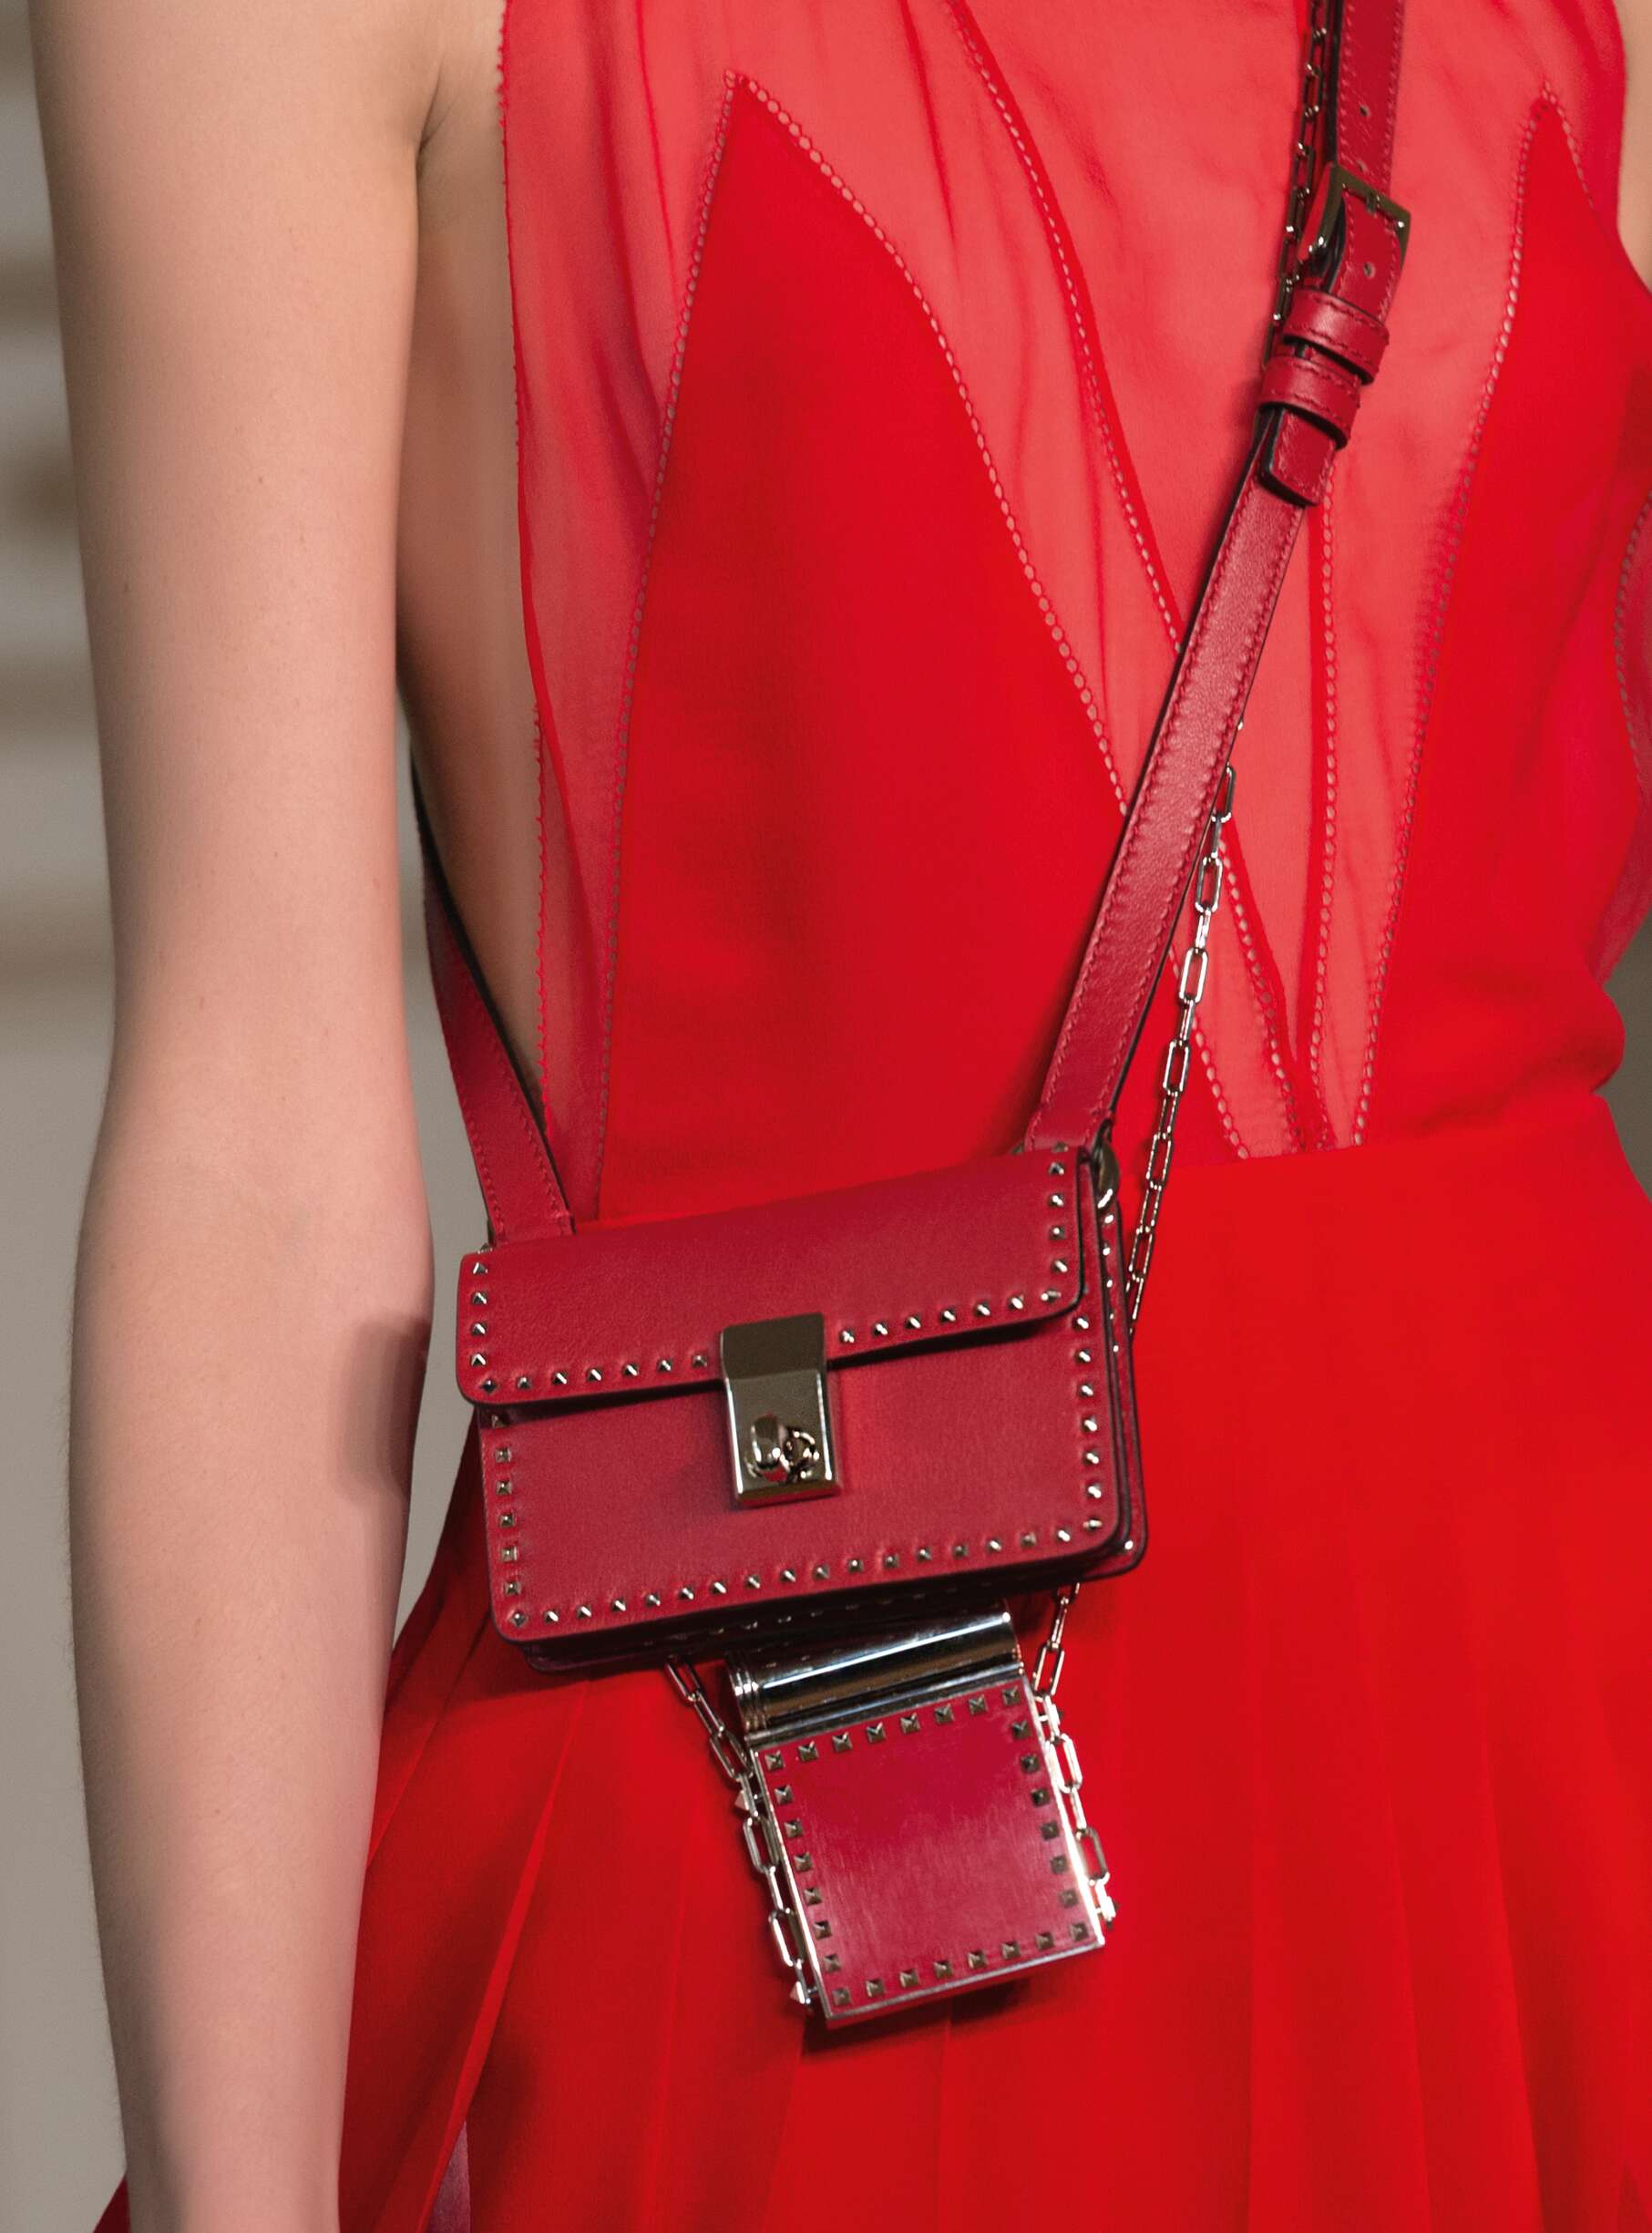 Bag 2017 Fashion Trends Valentino